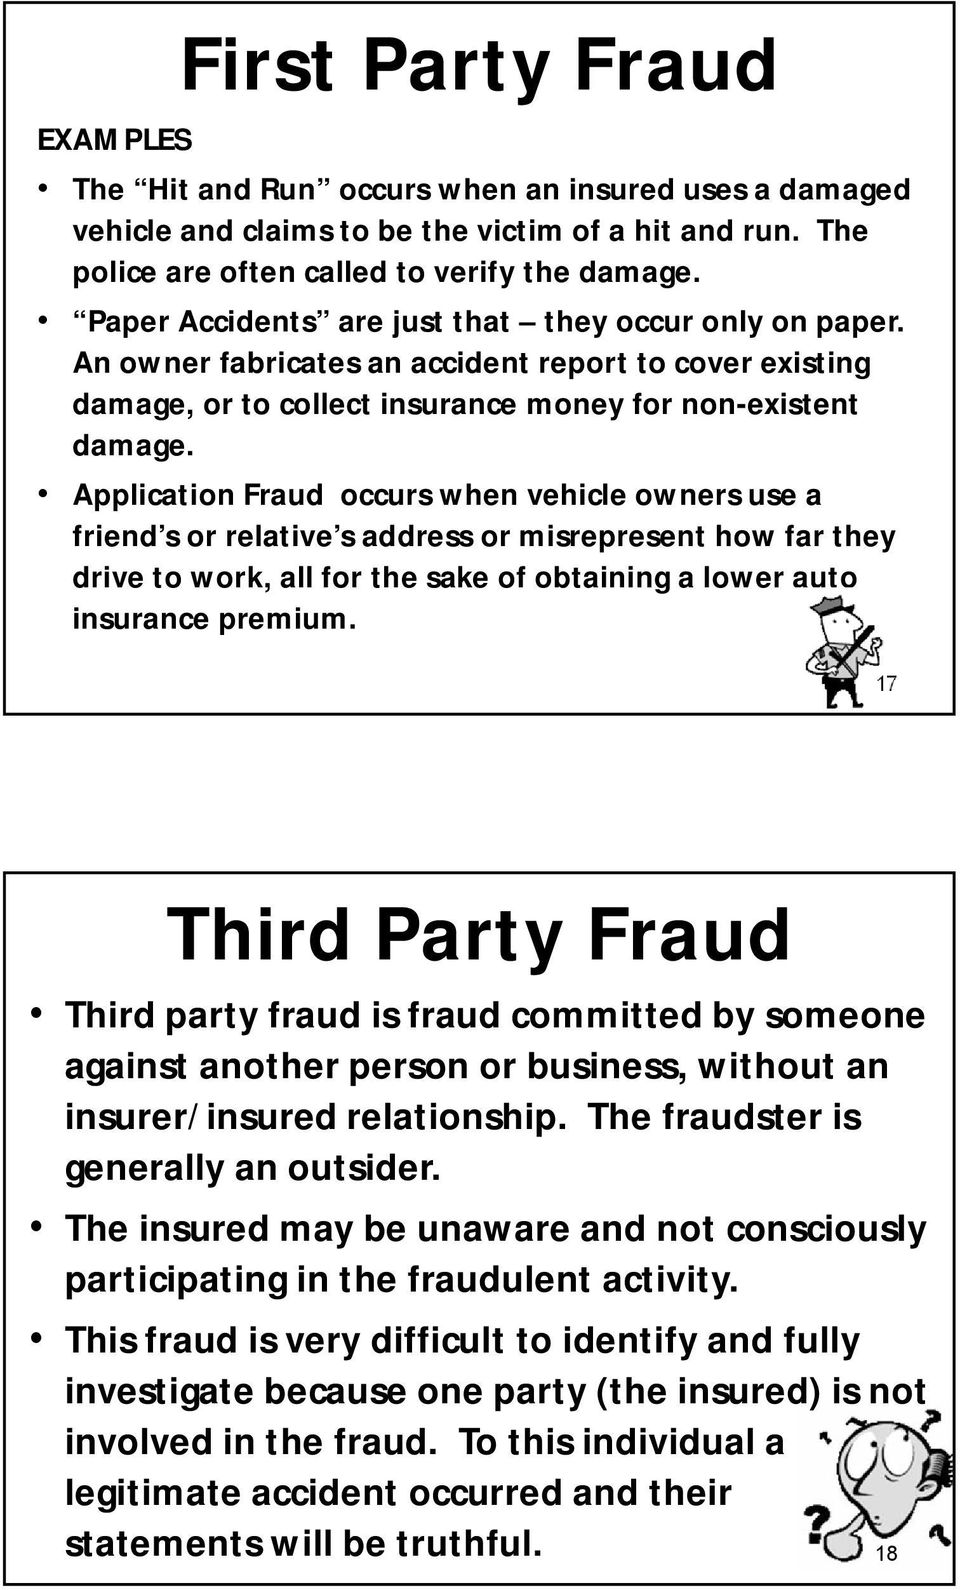 Application Fraud occurs when vehicle owners use a friend s or relative s address or misrepresent how far they drive to work, all for the sake of obtaining a lower auto insurance premium.